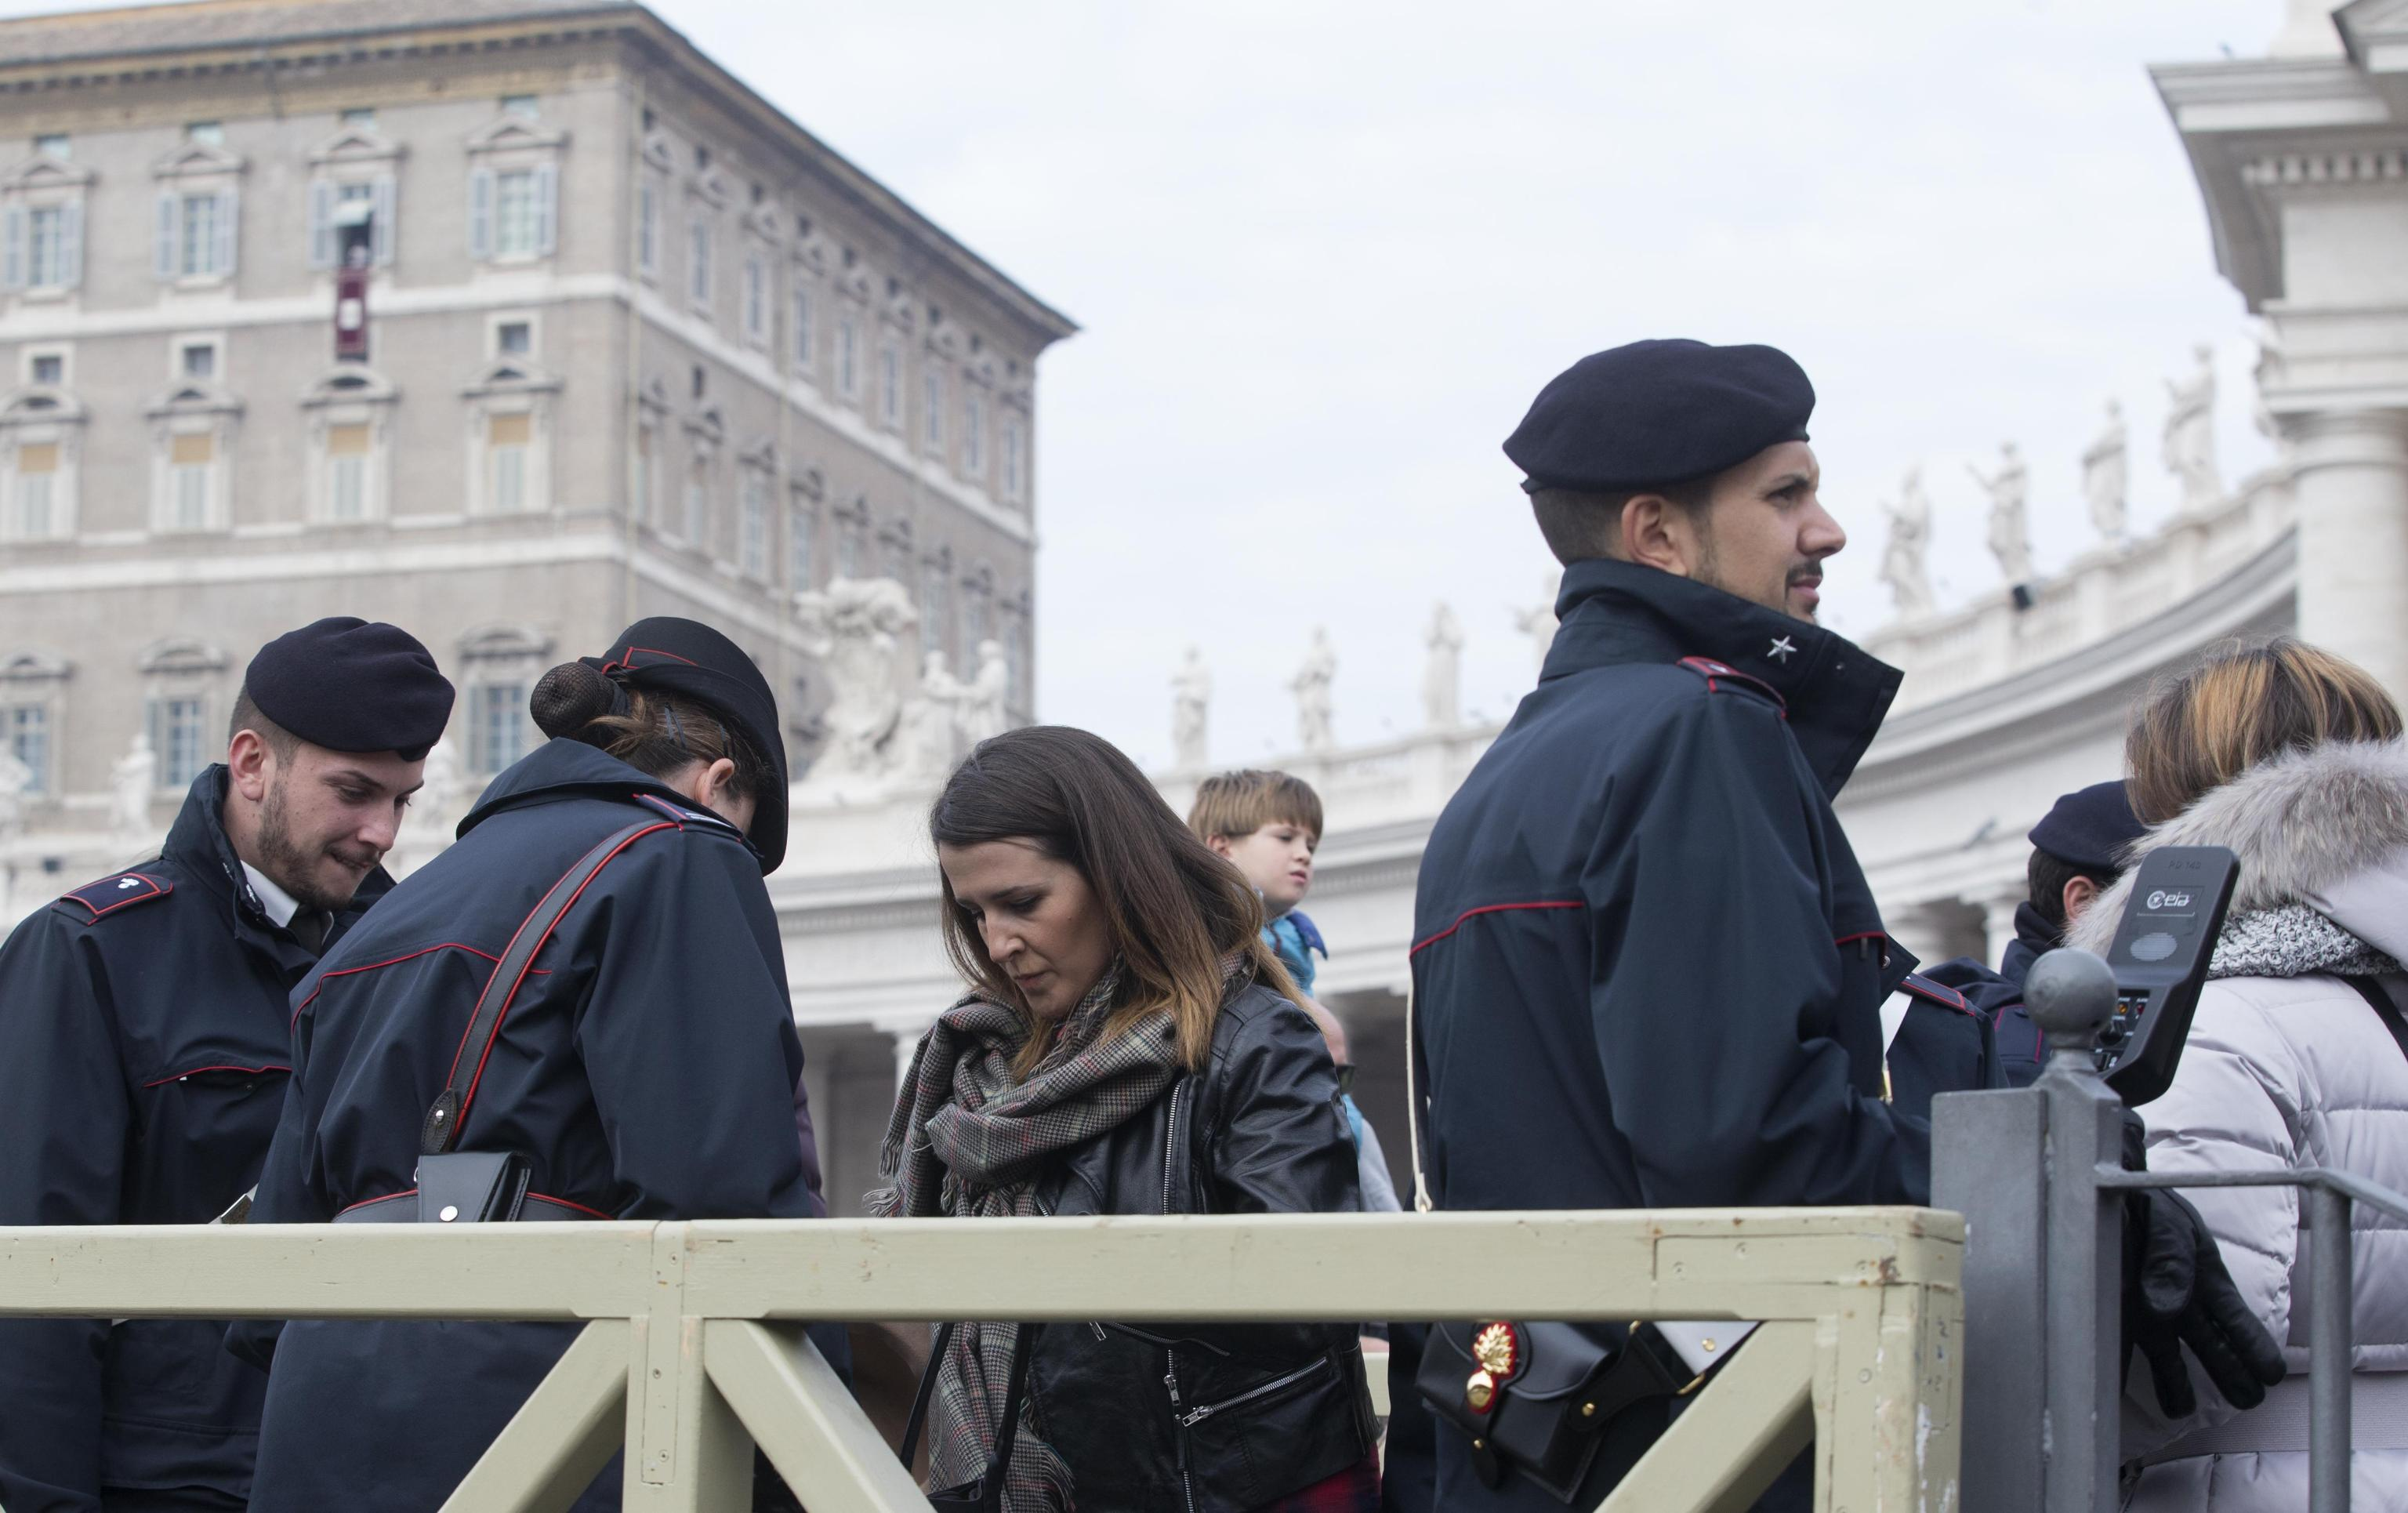 Italian Carabinieri check faithful with metal detector devices as they enter Saint Peter's Square. Vatican City